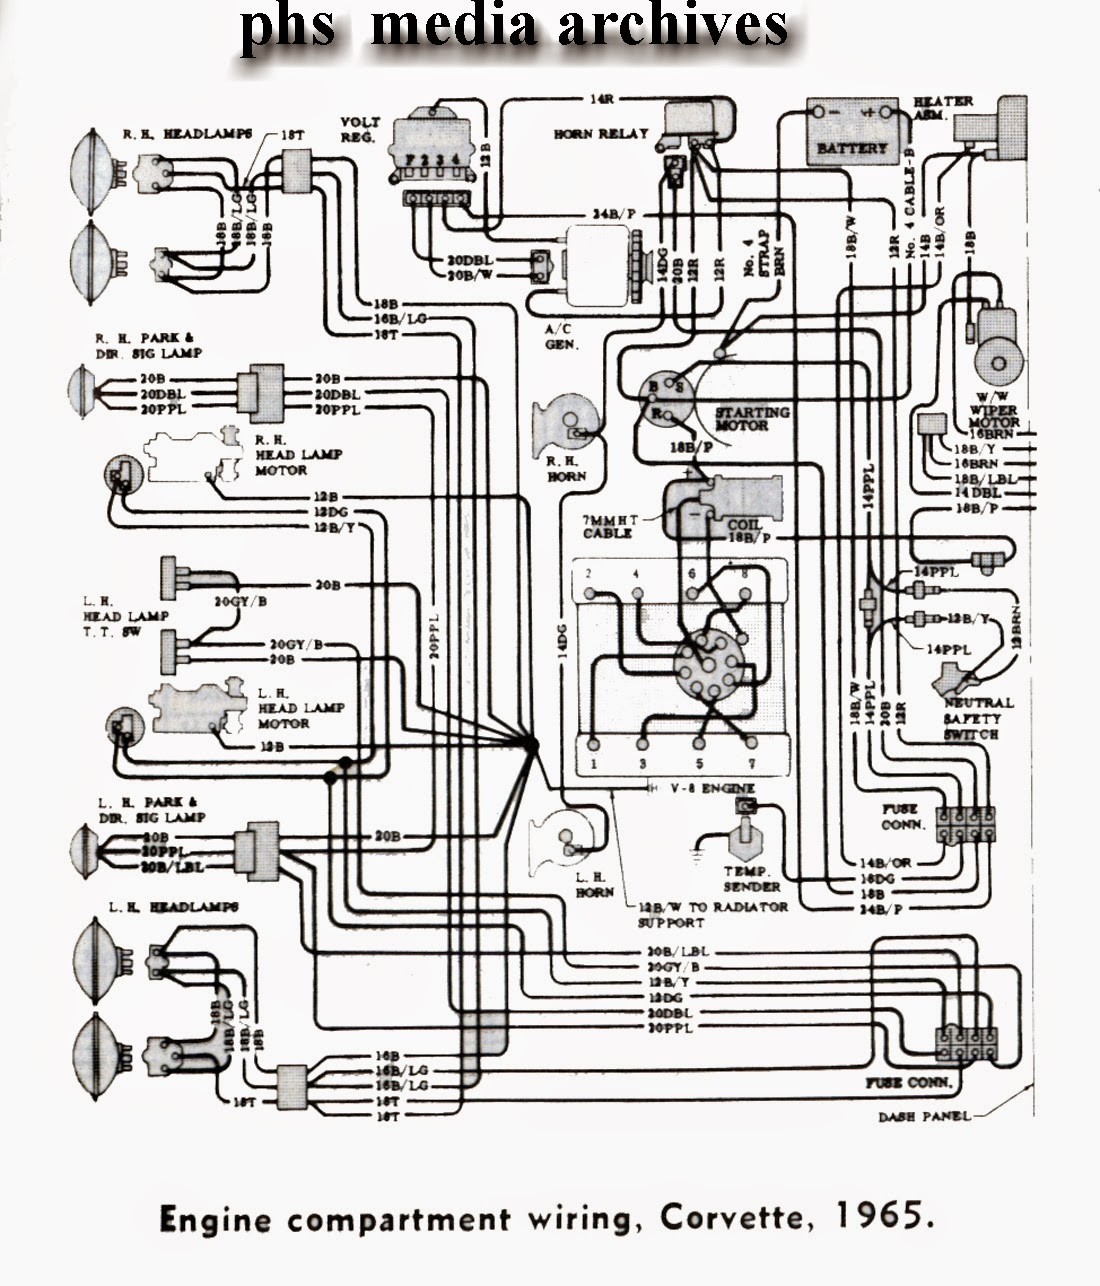 small resolution of ls1 engine wiring harnes diagram click the image to